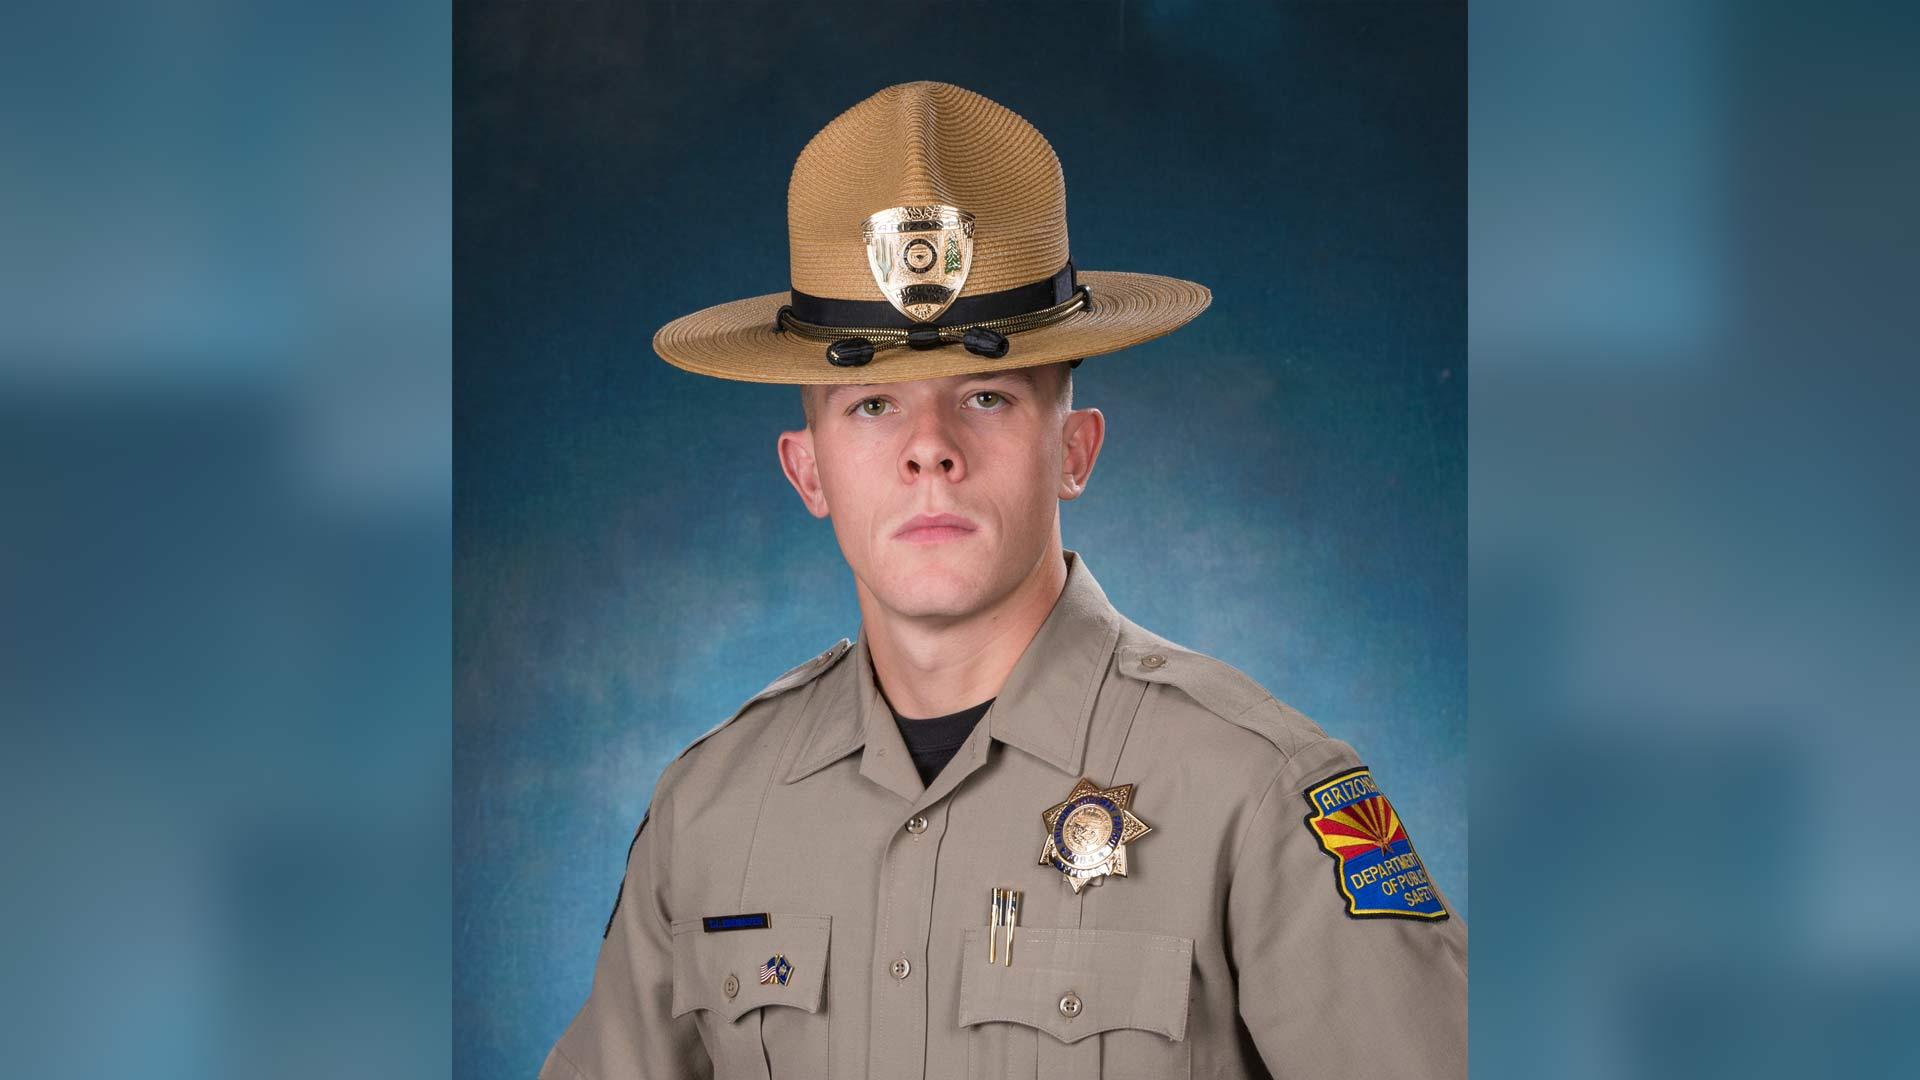 Arizona state trooper Tyler Edenhofer died after being shot during a roadside struggle on Wednesday, July 25.